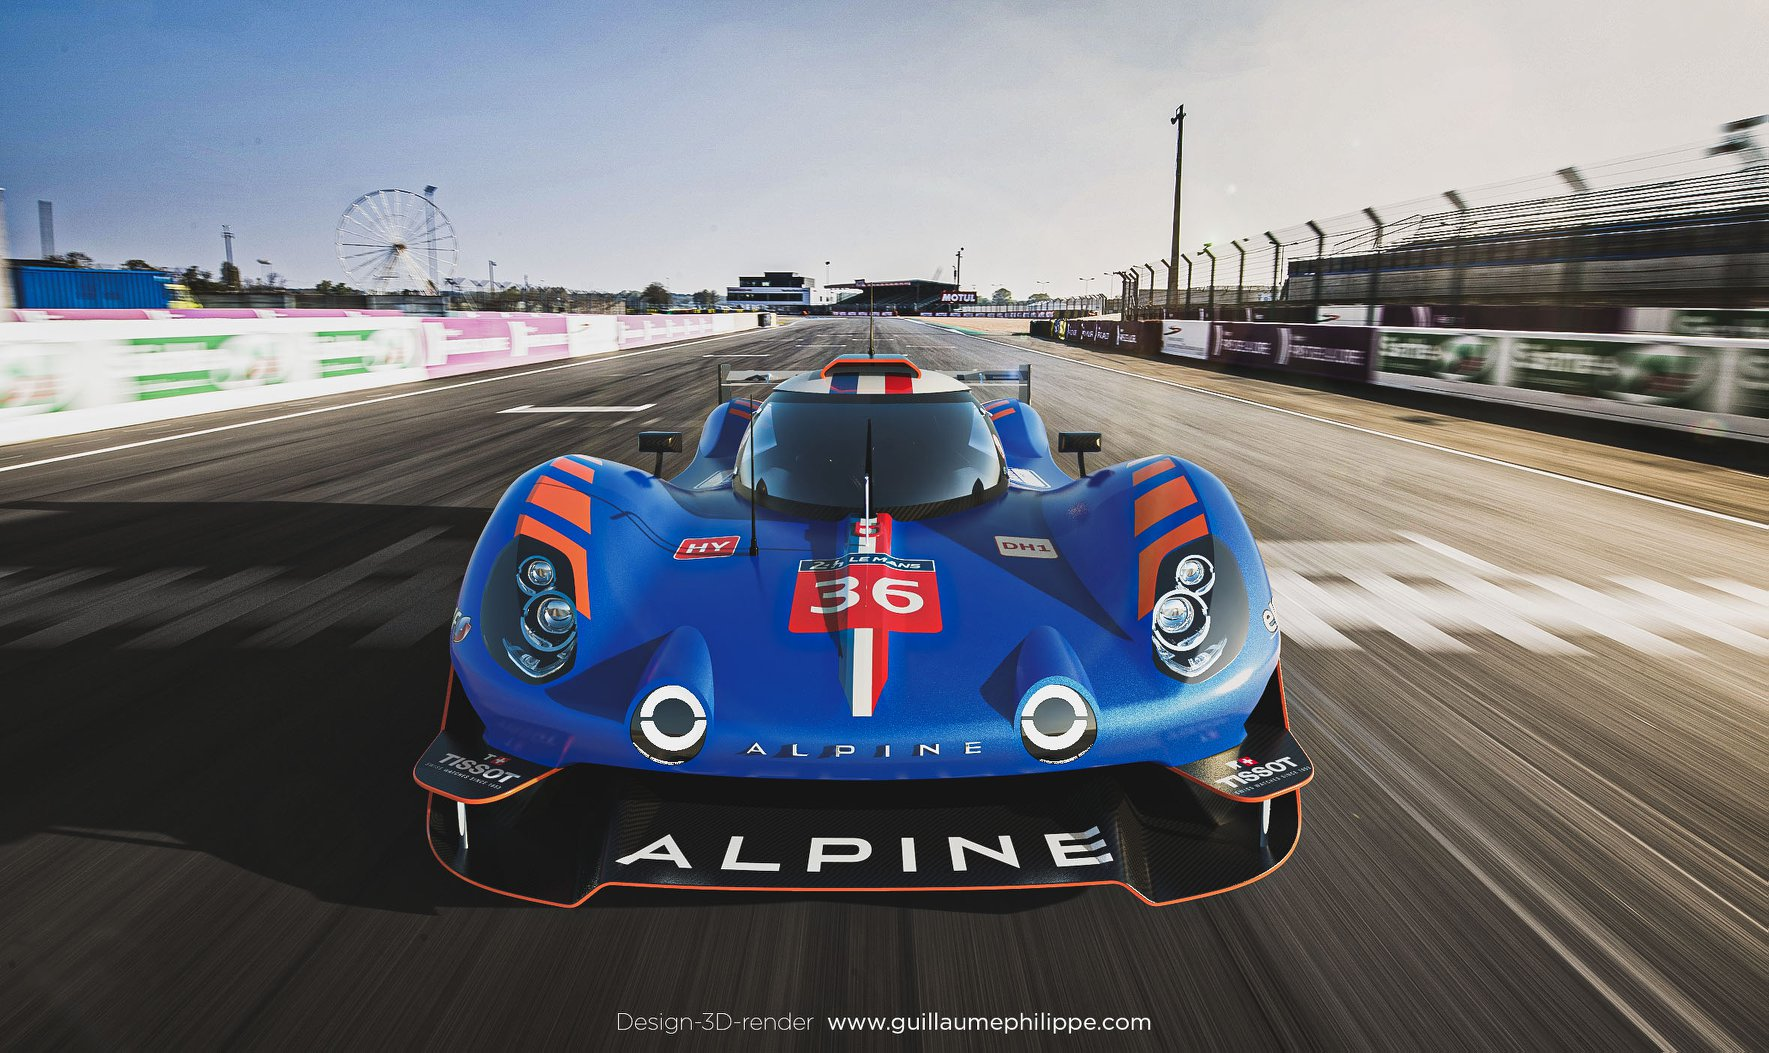 Alpine A480 LDMh design 3